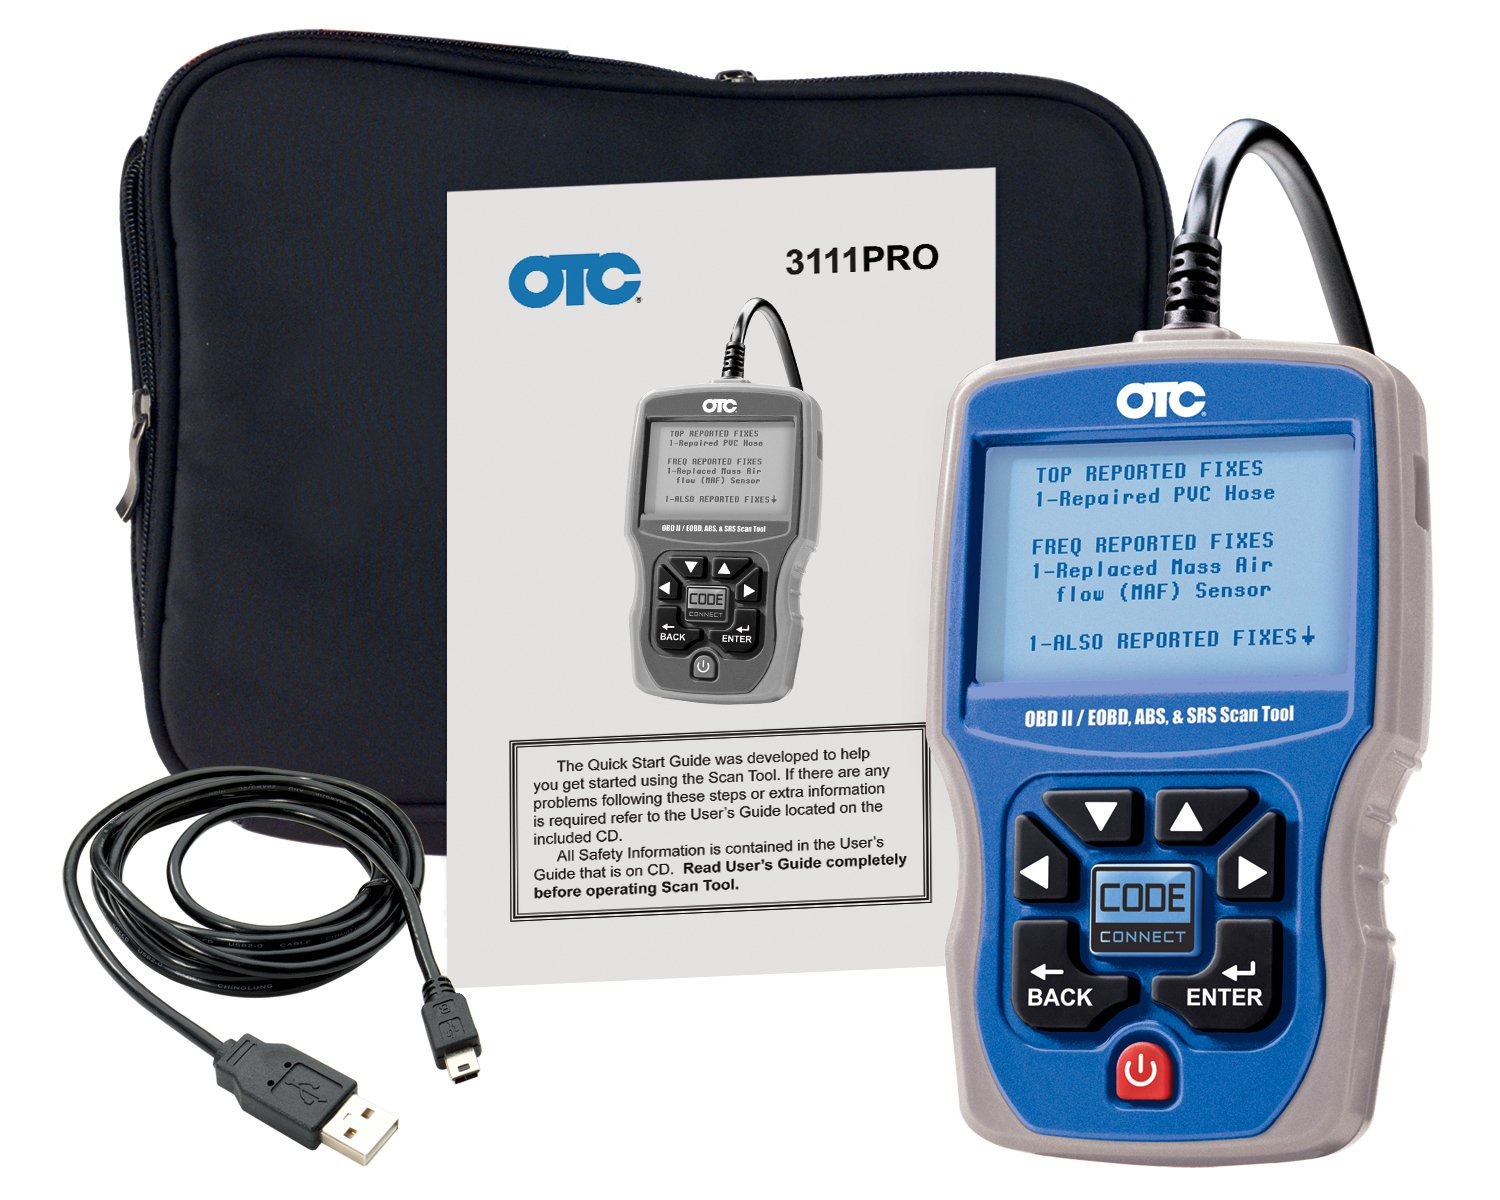 ABS And Airbag OTC 3111PRO Trilingual Scan Tool OBD II CAN